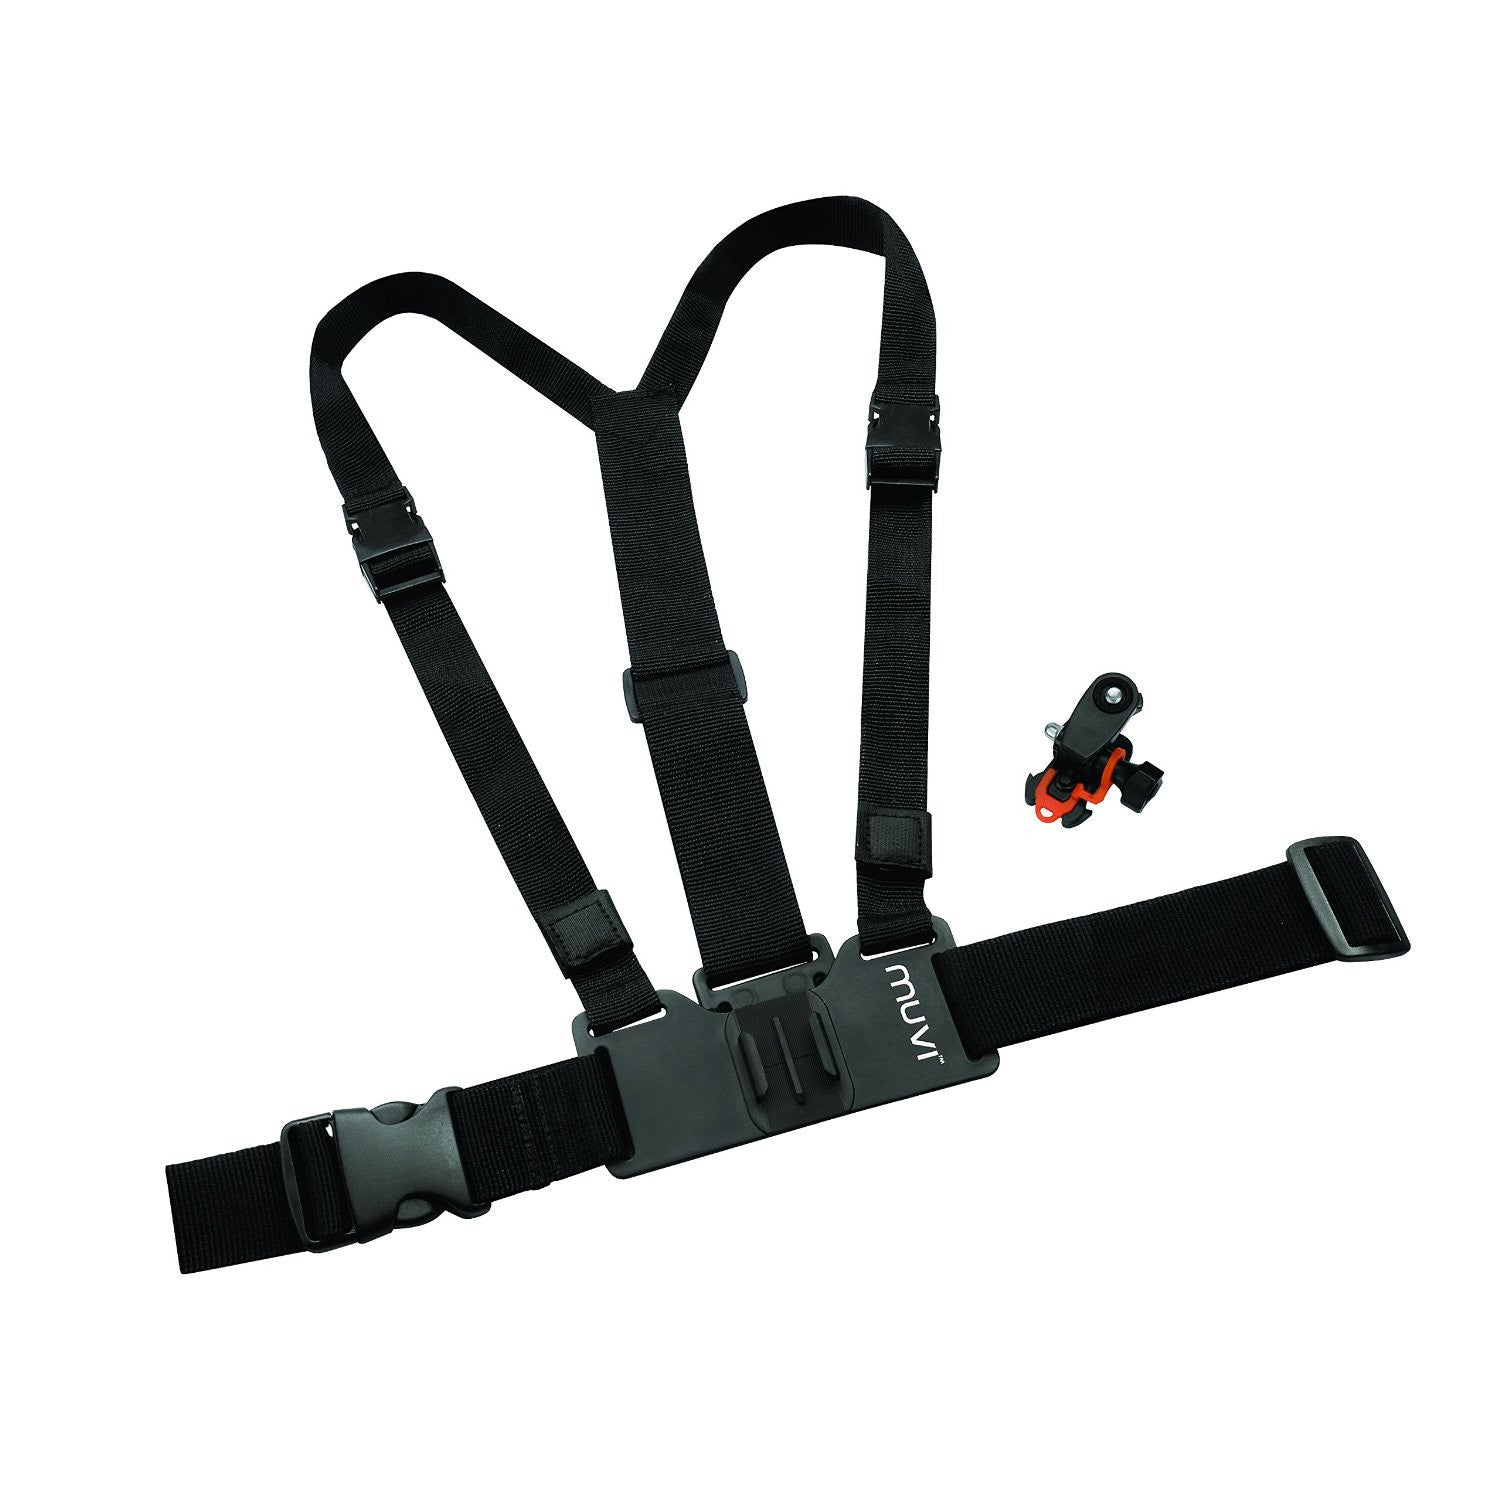 Veho VCC-A016-HSM Chest/Body Harness for MUVI HD with MUVI HD holder and tripod mount - Back40Trading2